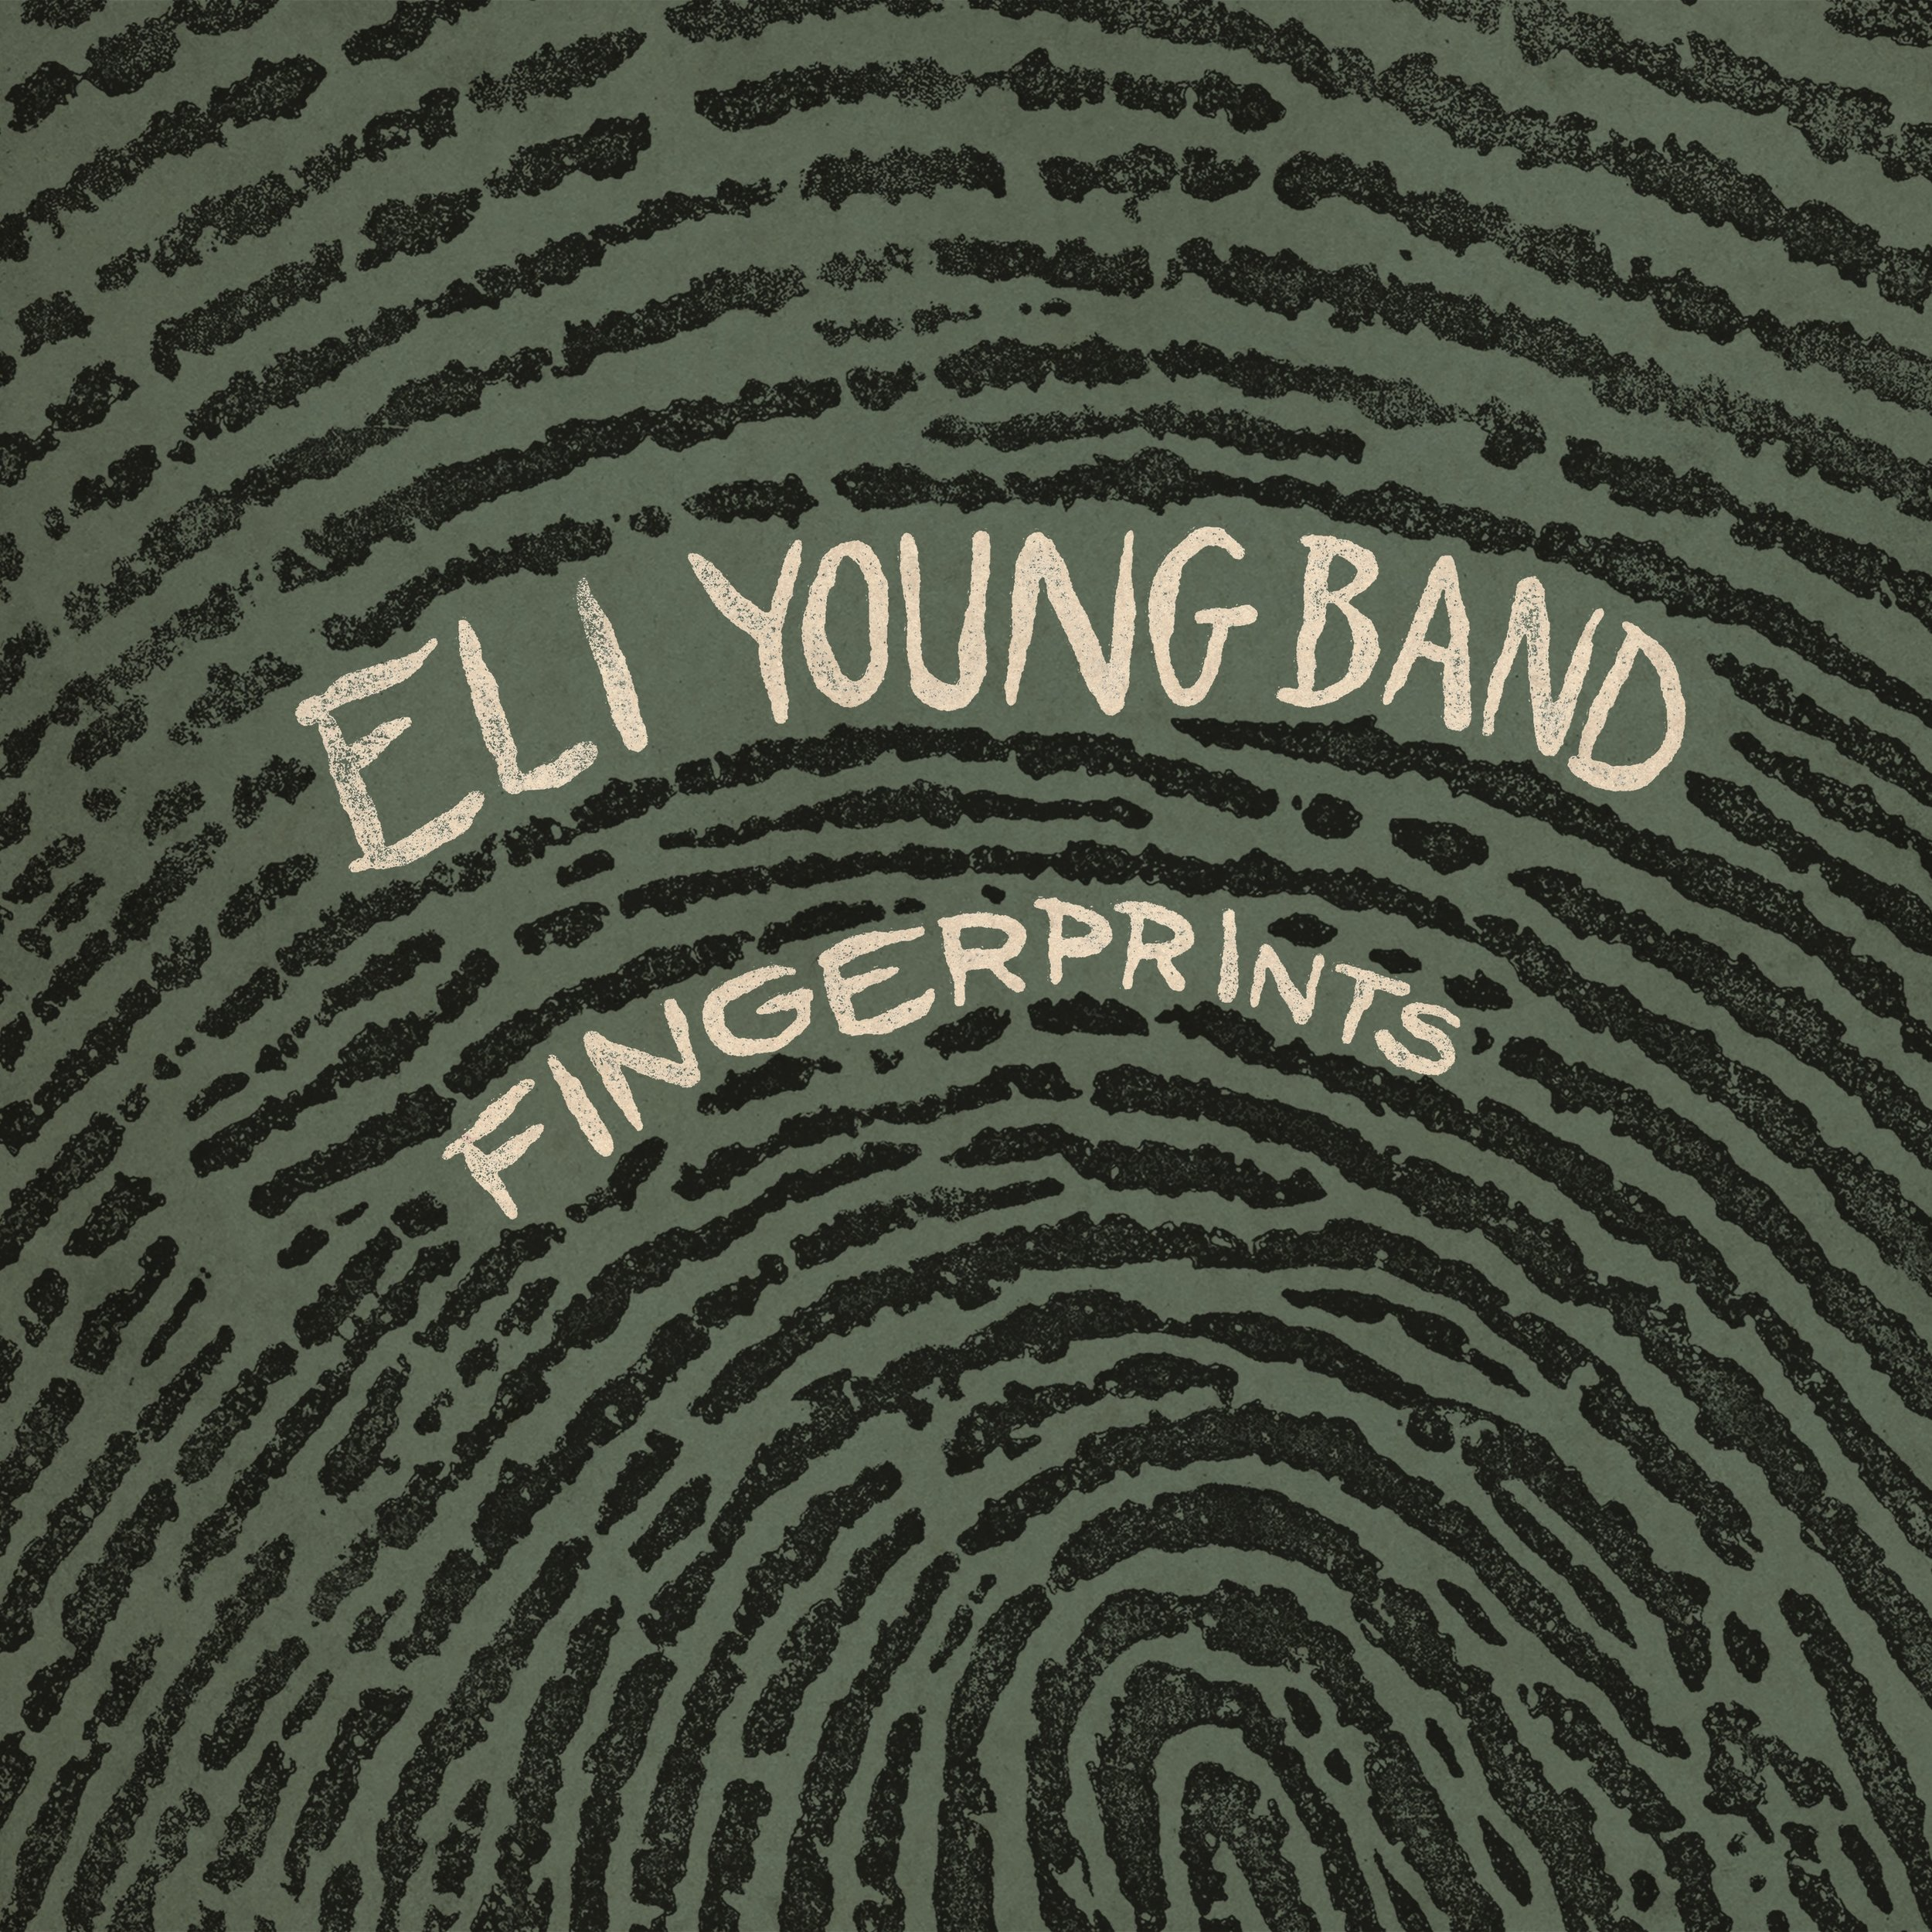 fingerprints eli young band.jpg